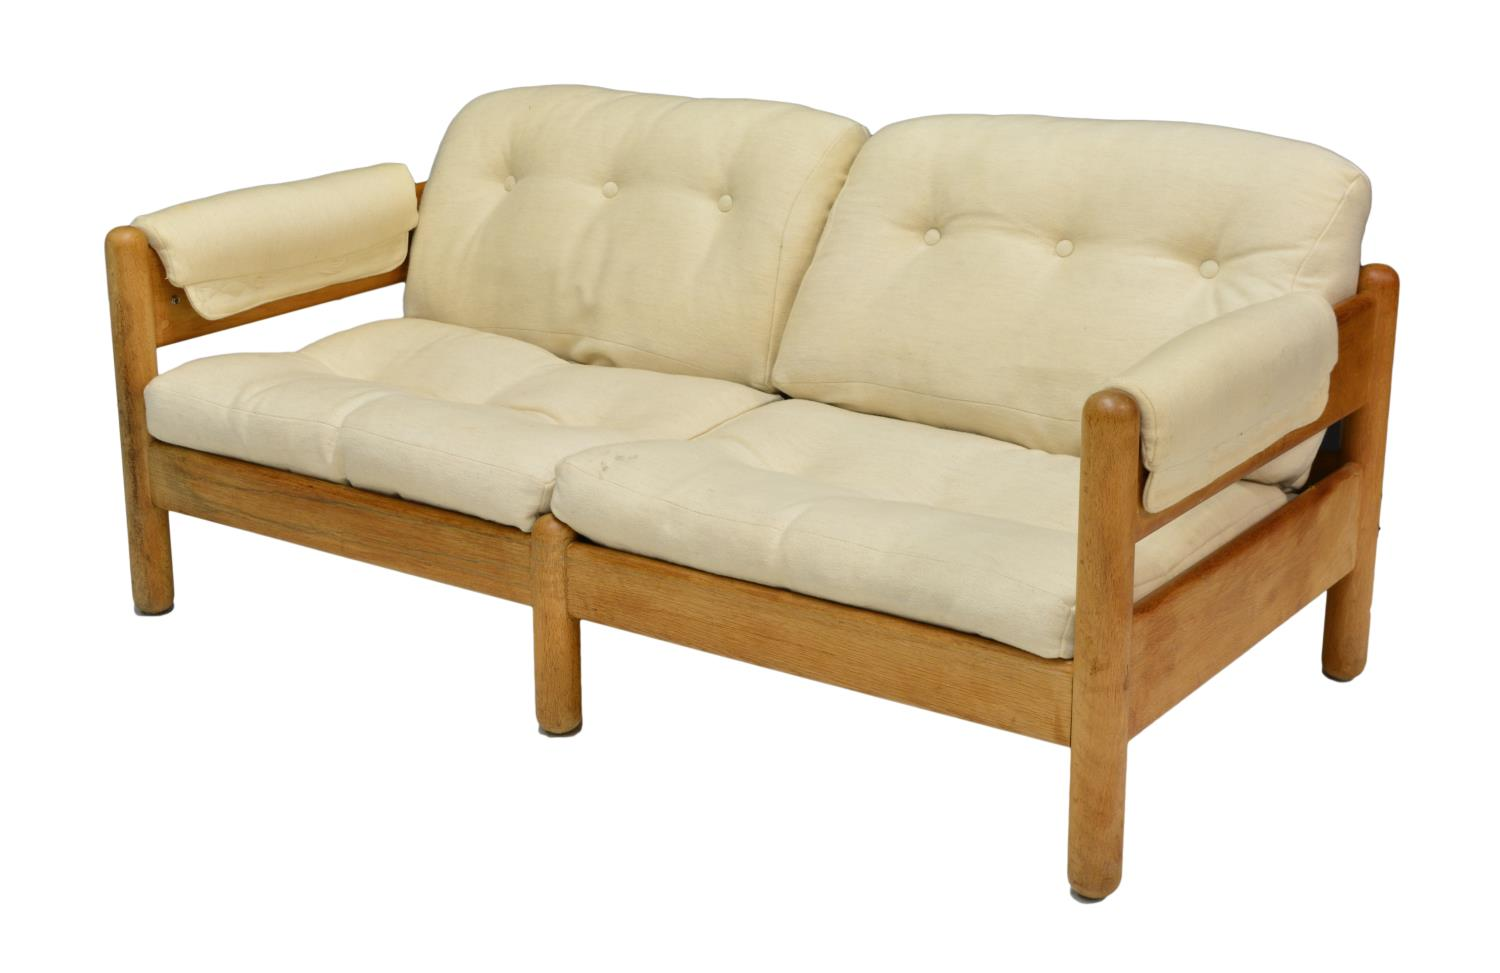 Danish Mid Century Modern Oak Frame Loveseat June Mid Century Design Antiques Estates